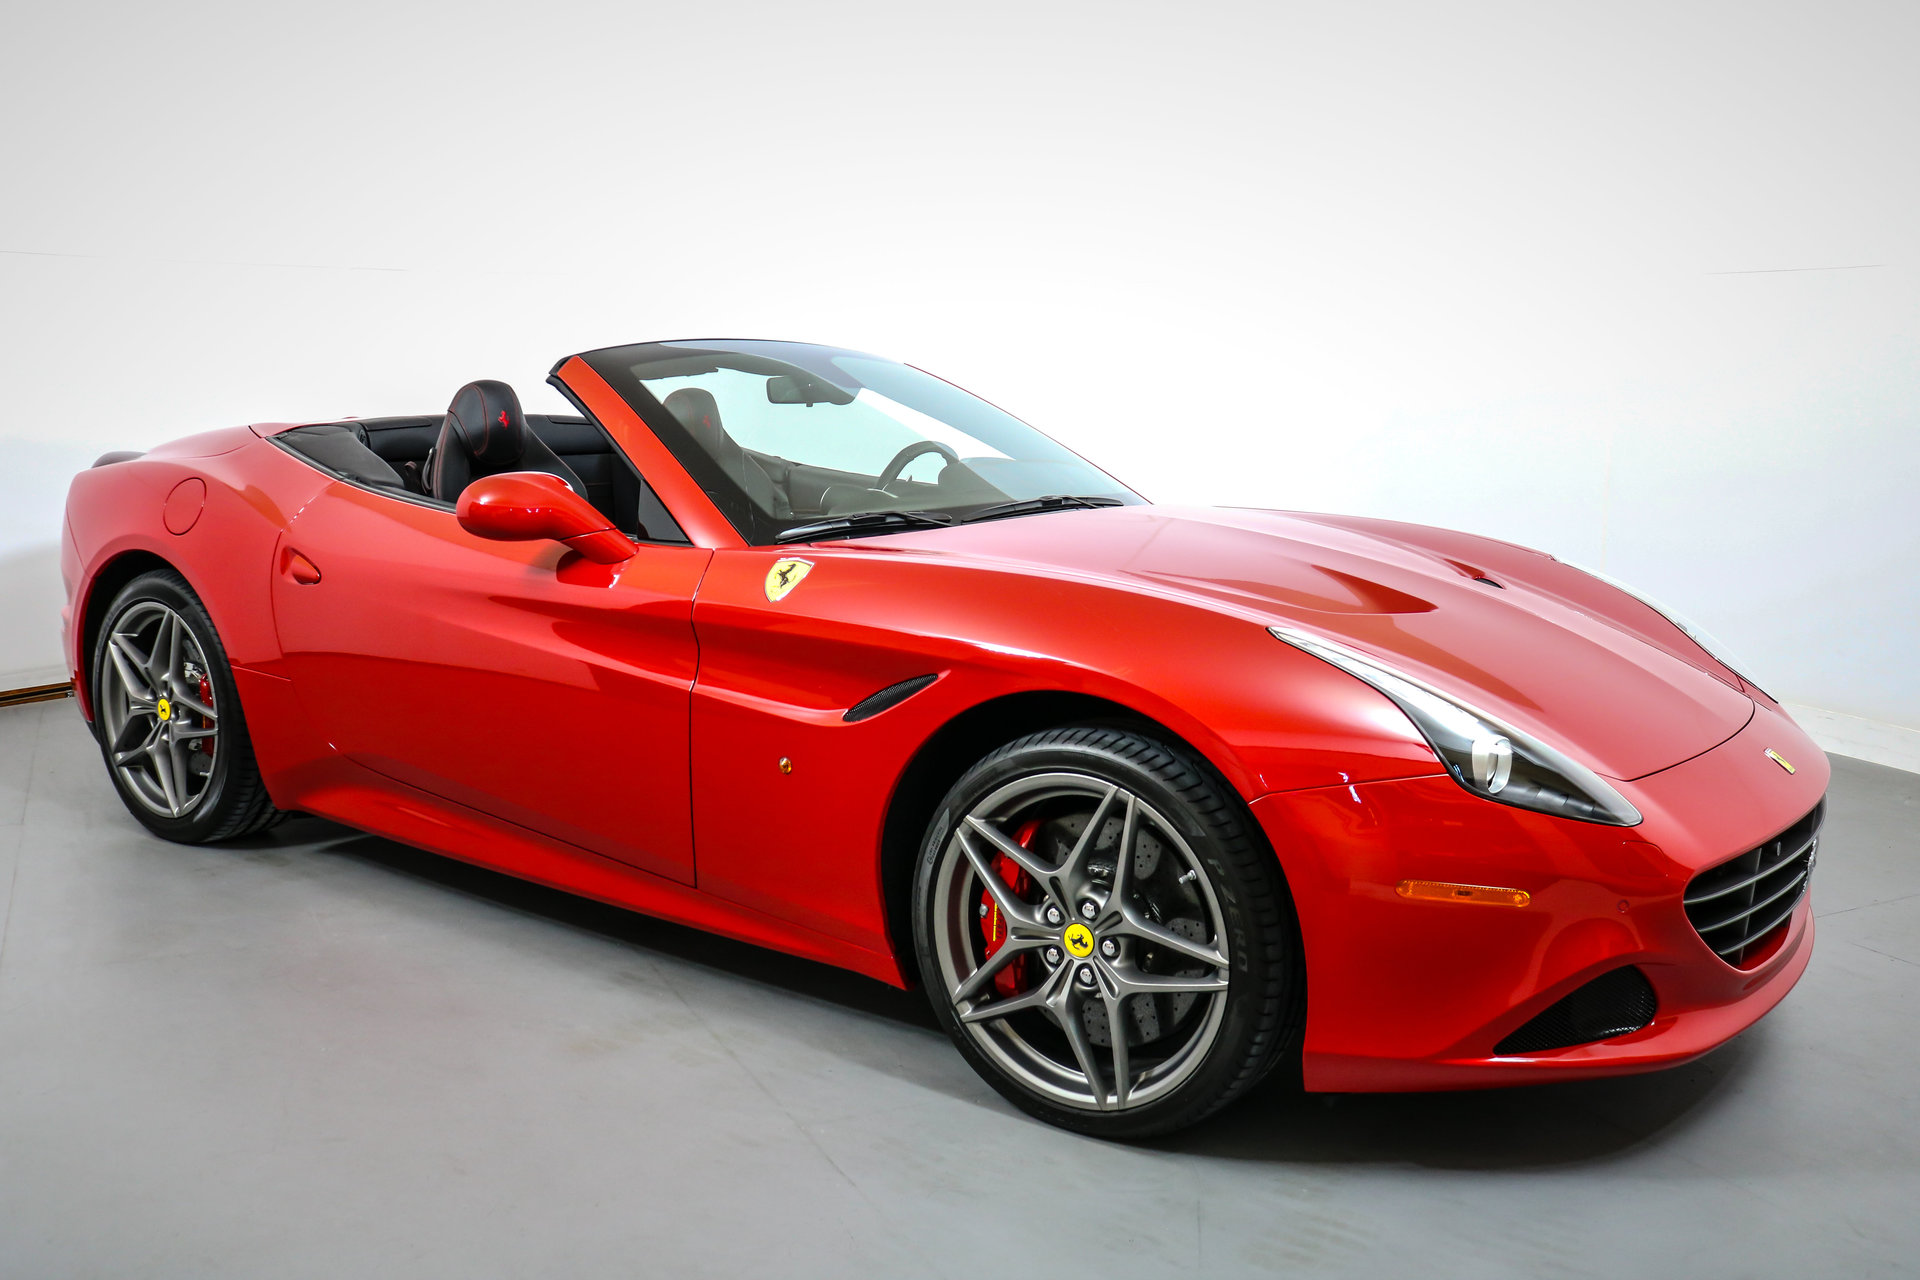 2017 ferrari california t for sale 89199 mcg. Black Bedroom Furniture Sets. Home Design Ideas